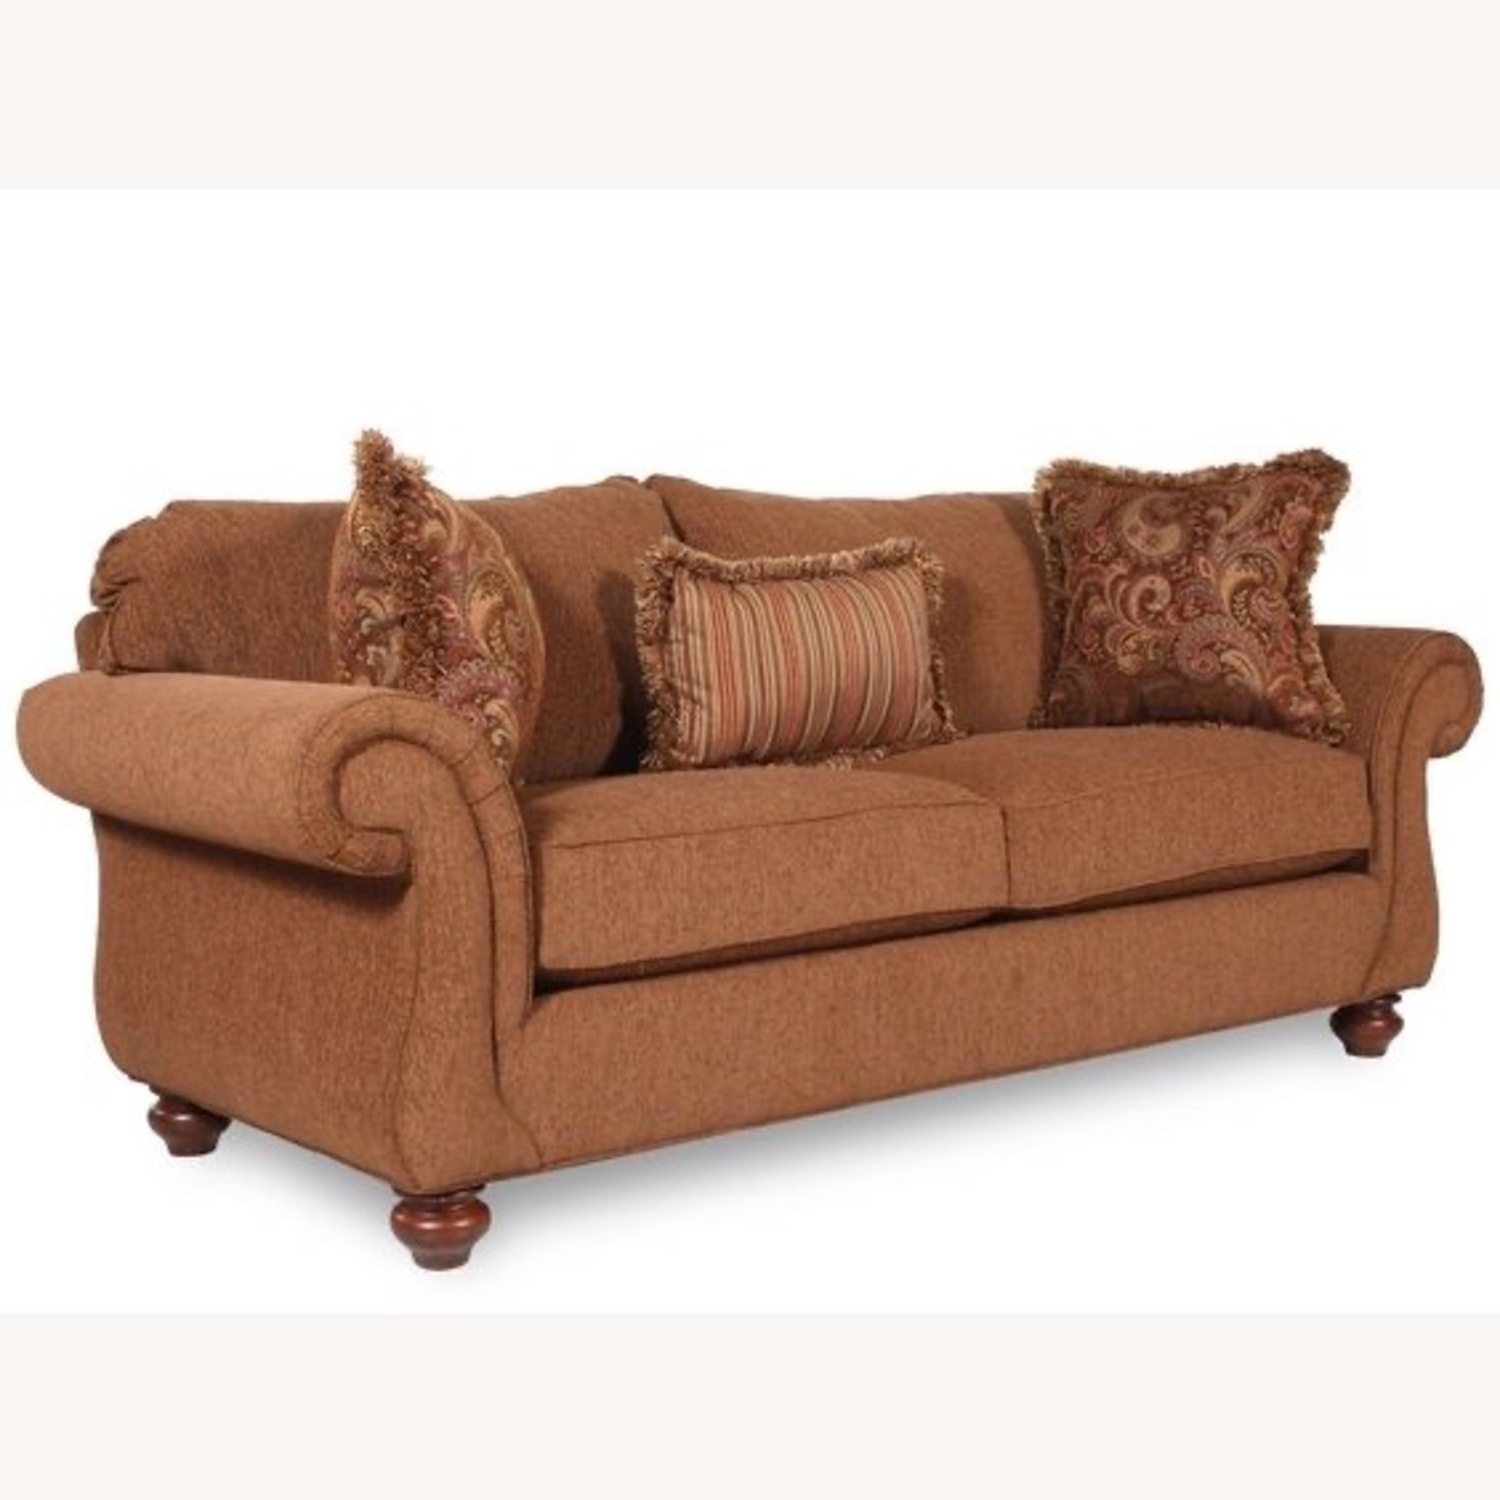 Broyhill Sofas 2 available - image-3